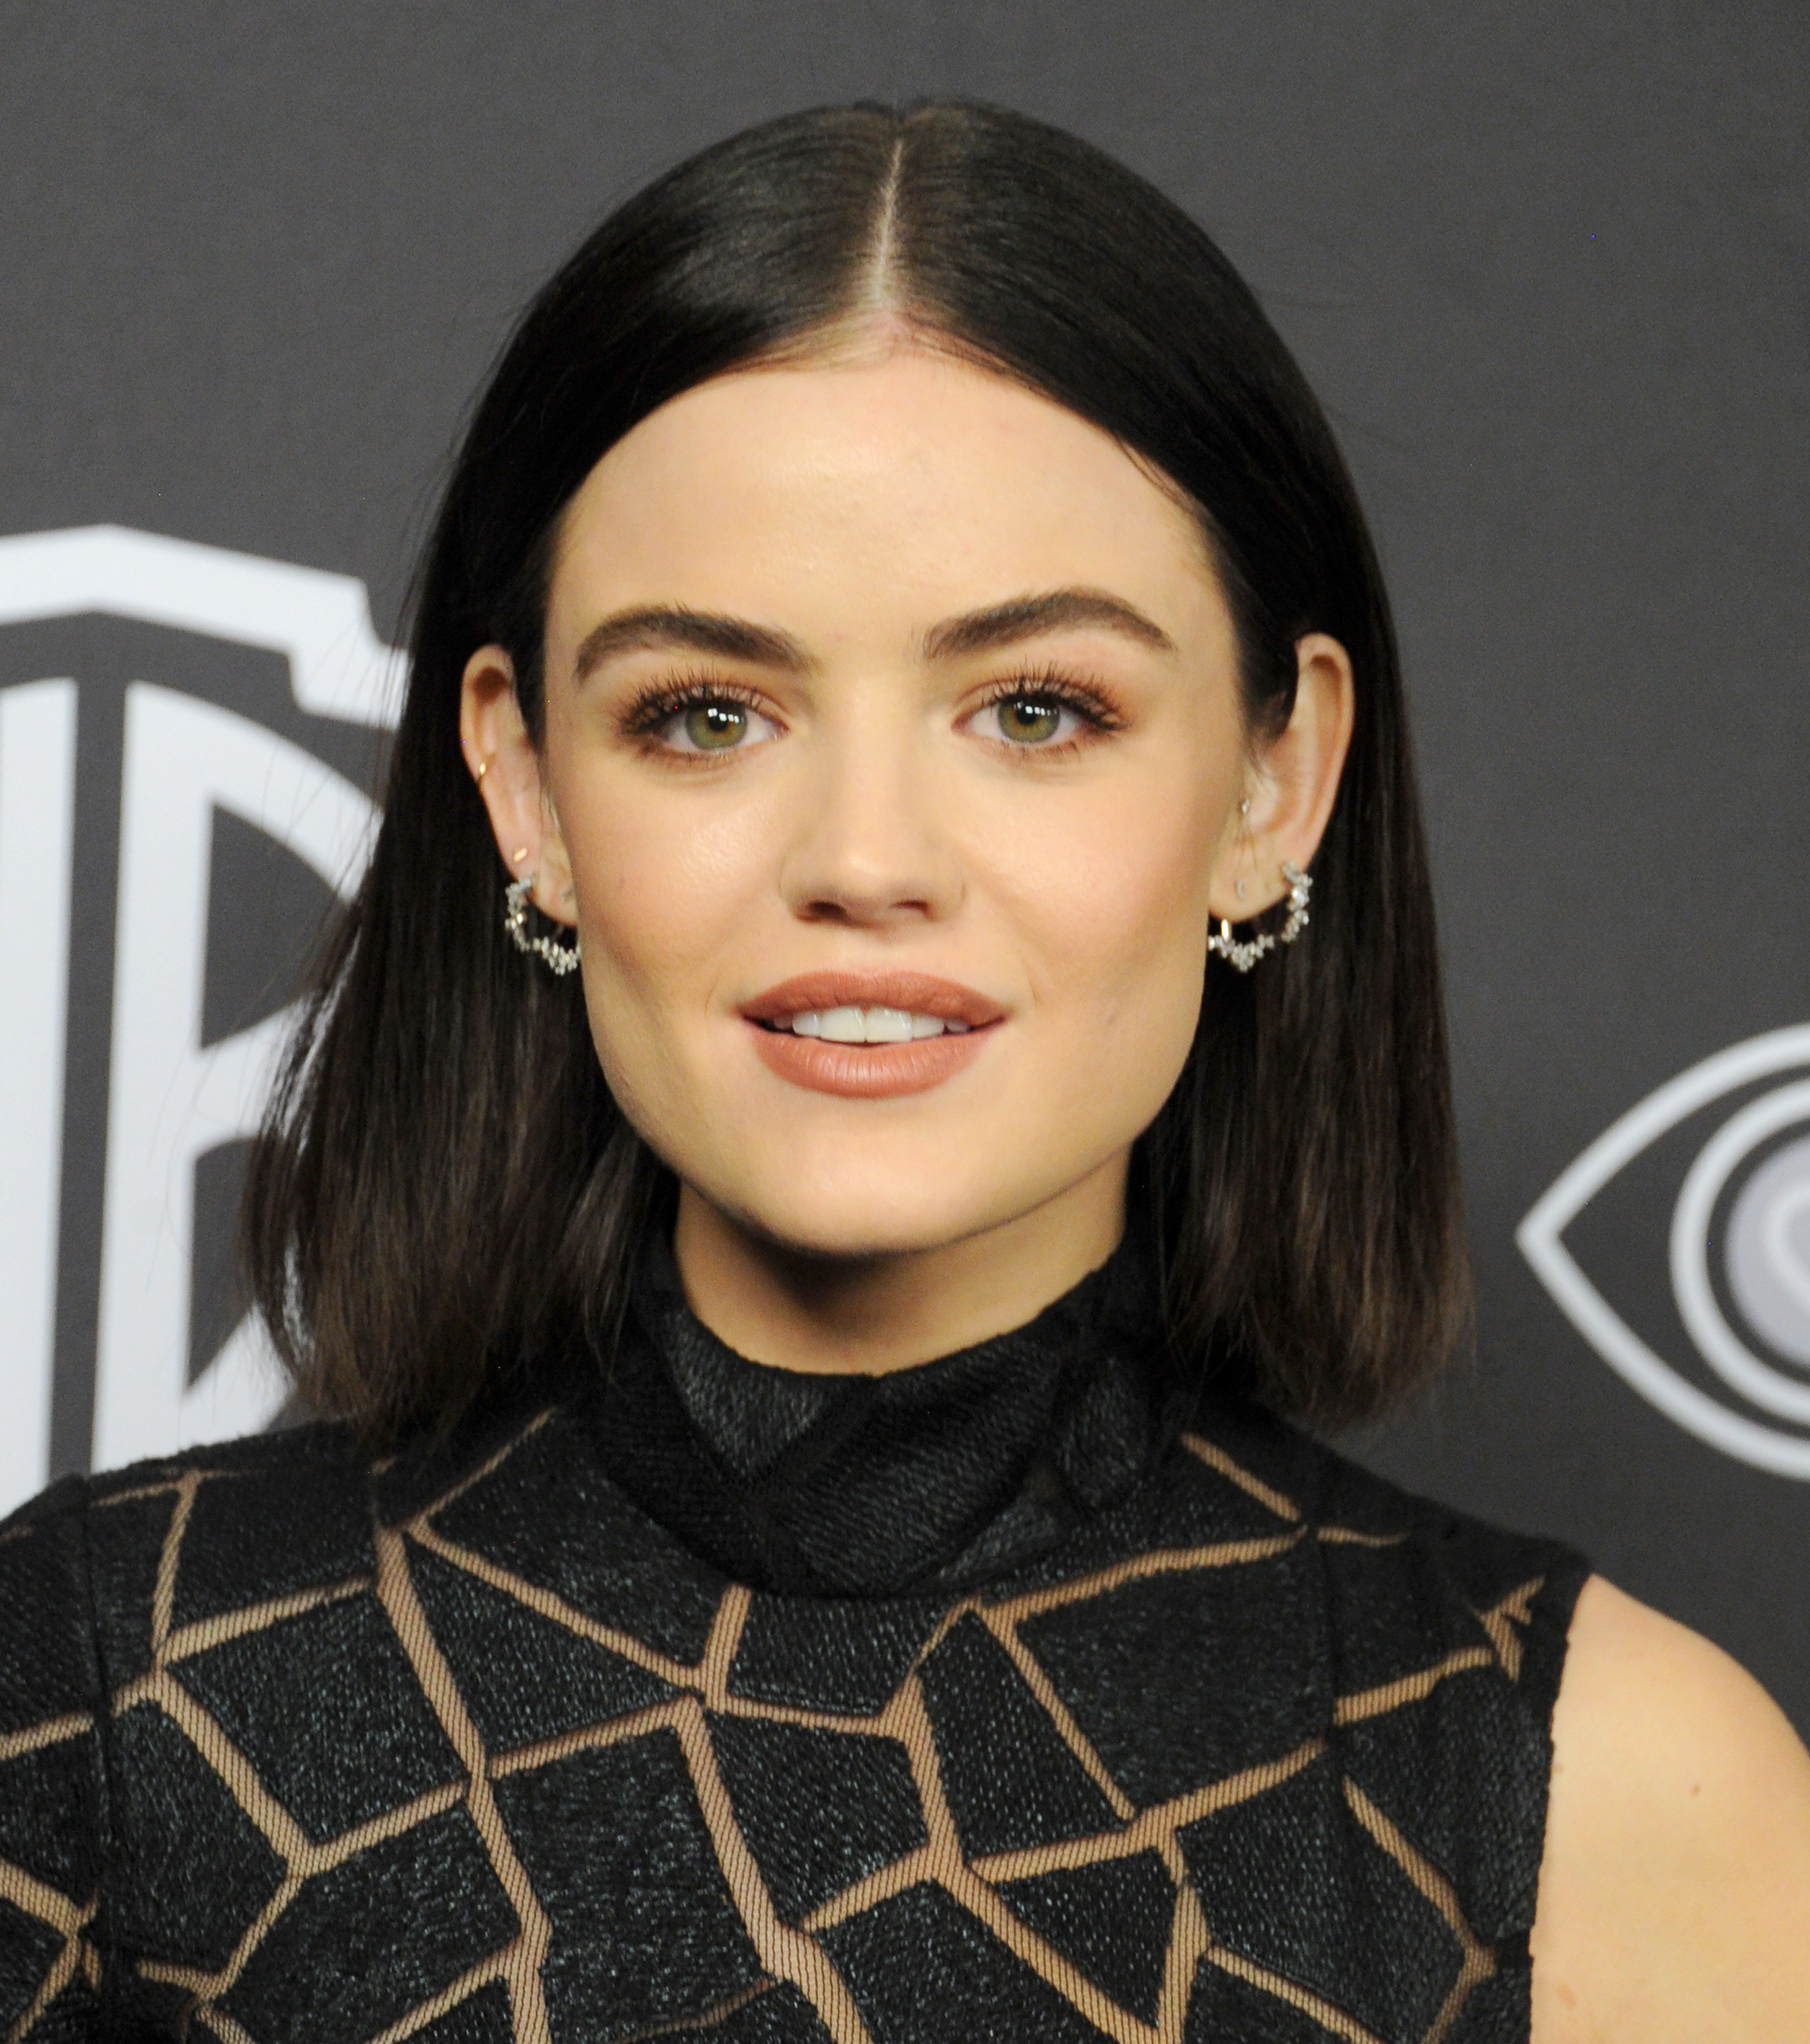 BEVERLY HILLS, CA - JANUARY 08:  Actress Lucy Hale arrives at the 18th Annual Post-Golden Globes Party hosted by Warner Bros. Pictures and InStyle at The Beverly Hilton Hotel on January 8, 2017 in Beverly Hills, California.  (Photo by Gregg DeGuire/FilmMagic)